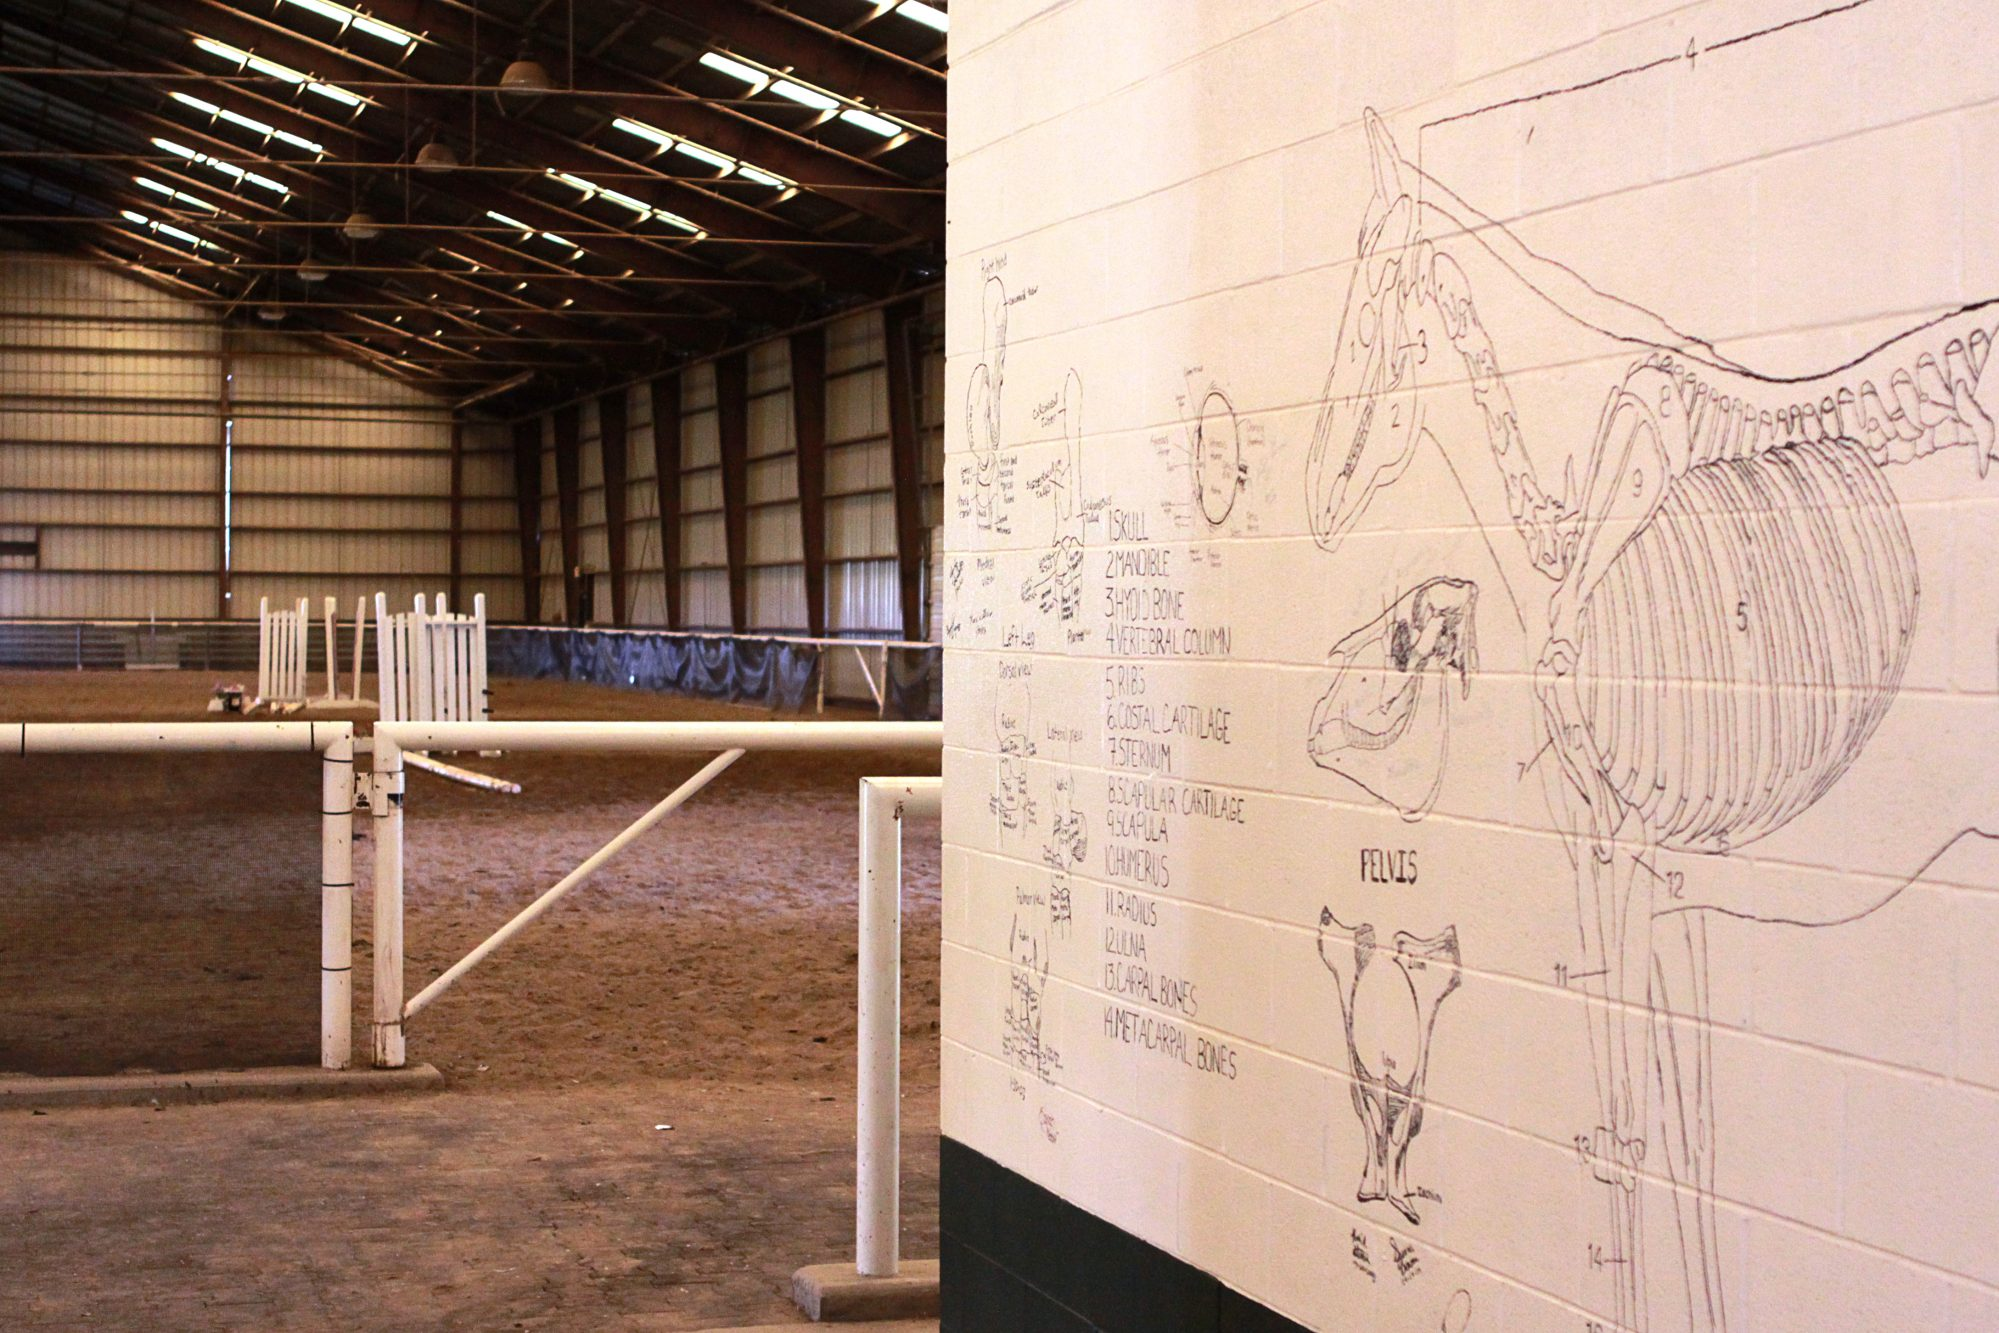 Inside the Equestrian Center